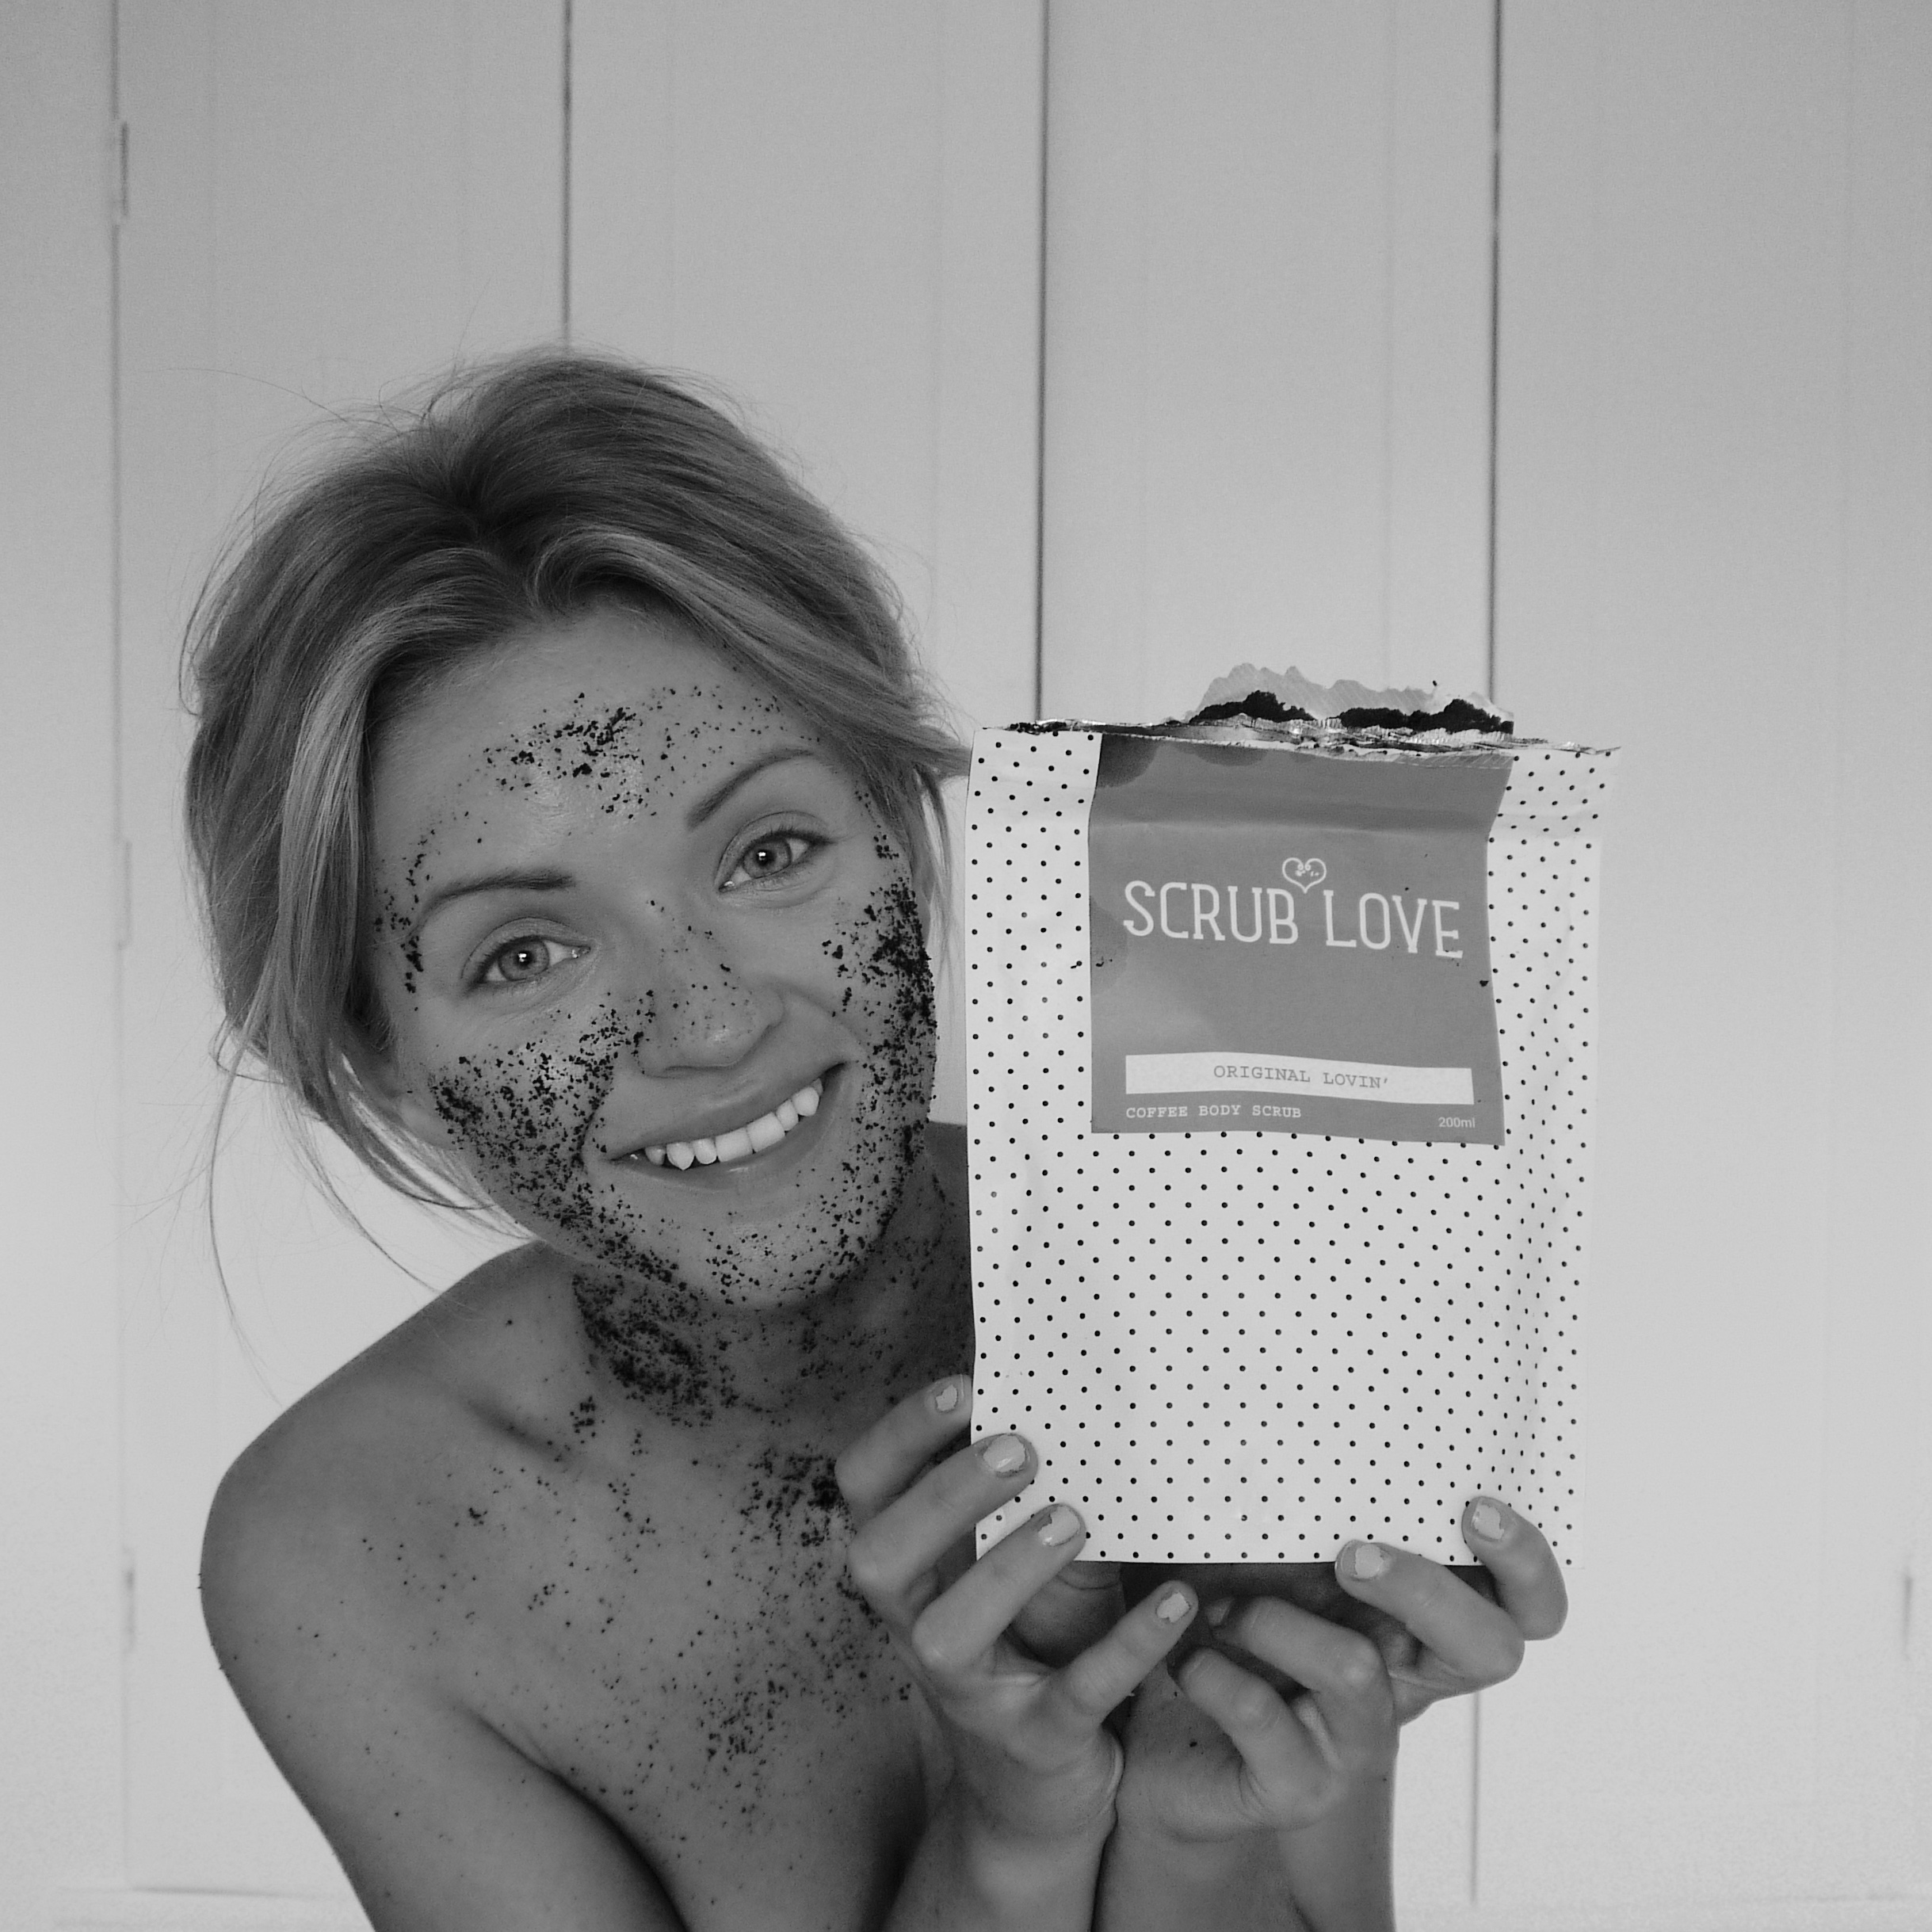 lauras little locket, laura byrnes, coffee scrub, scrub love